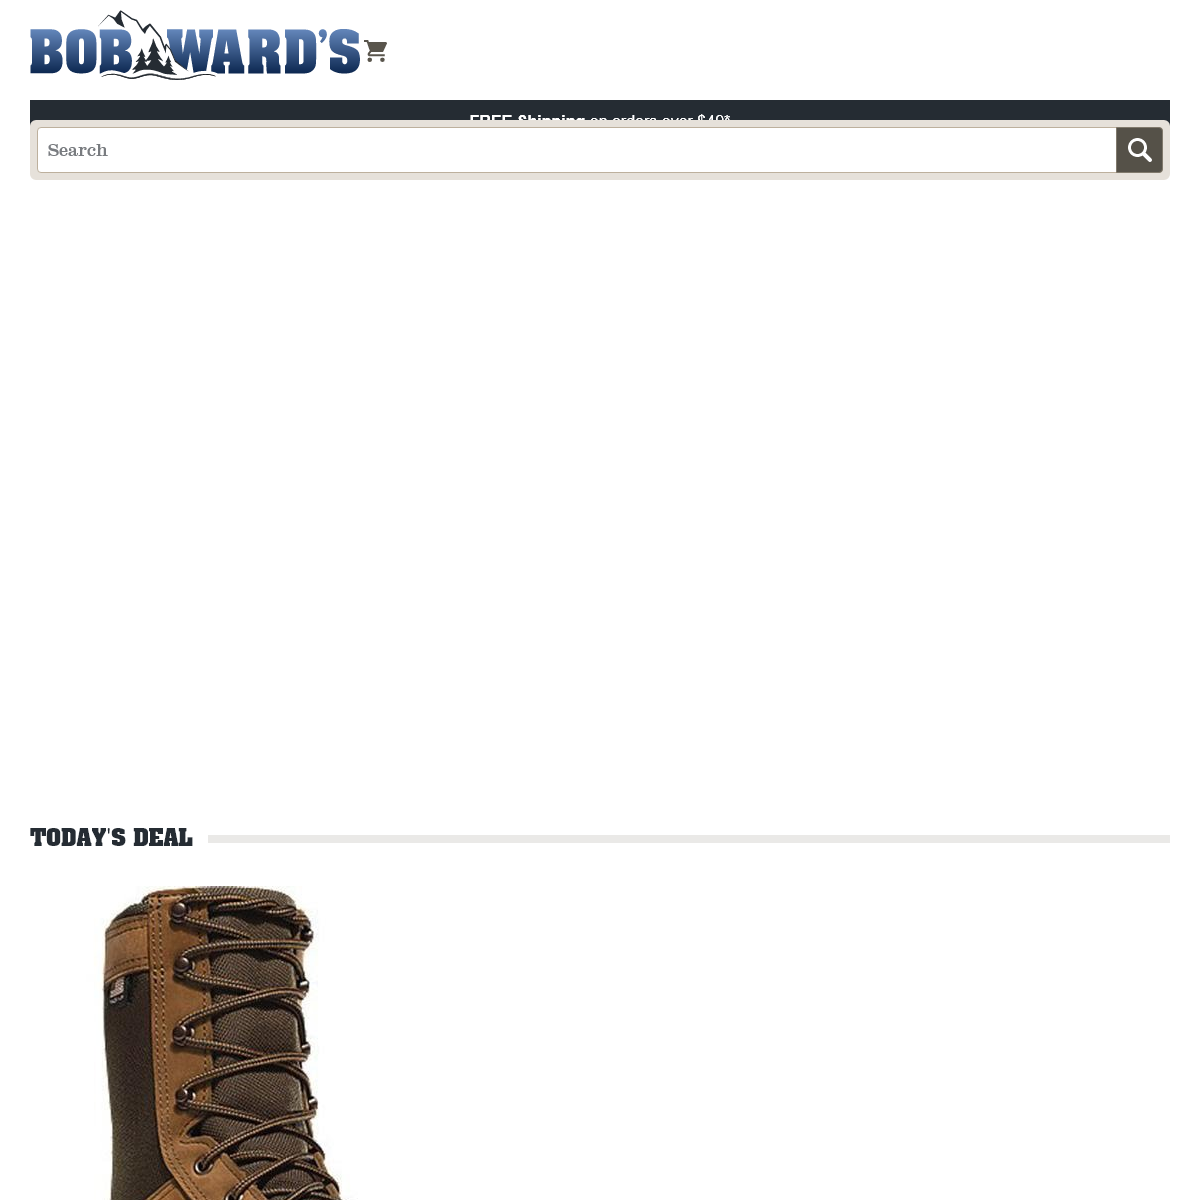 Bob Ward`s - Top Brand Outdoor Gear & Clothing - Camping, Hiking, Shoes, Hunting & Fishing